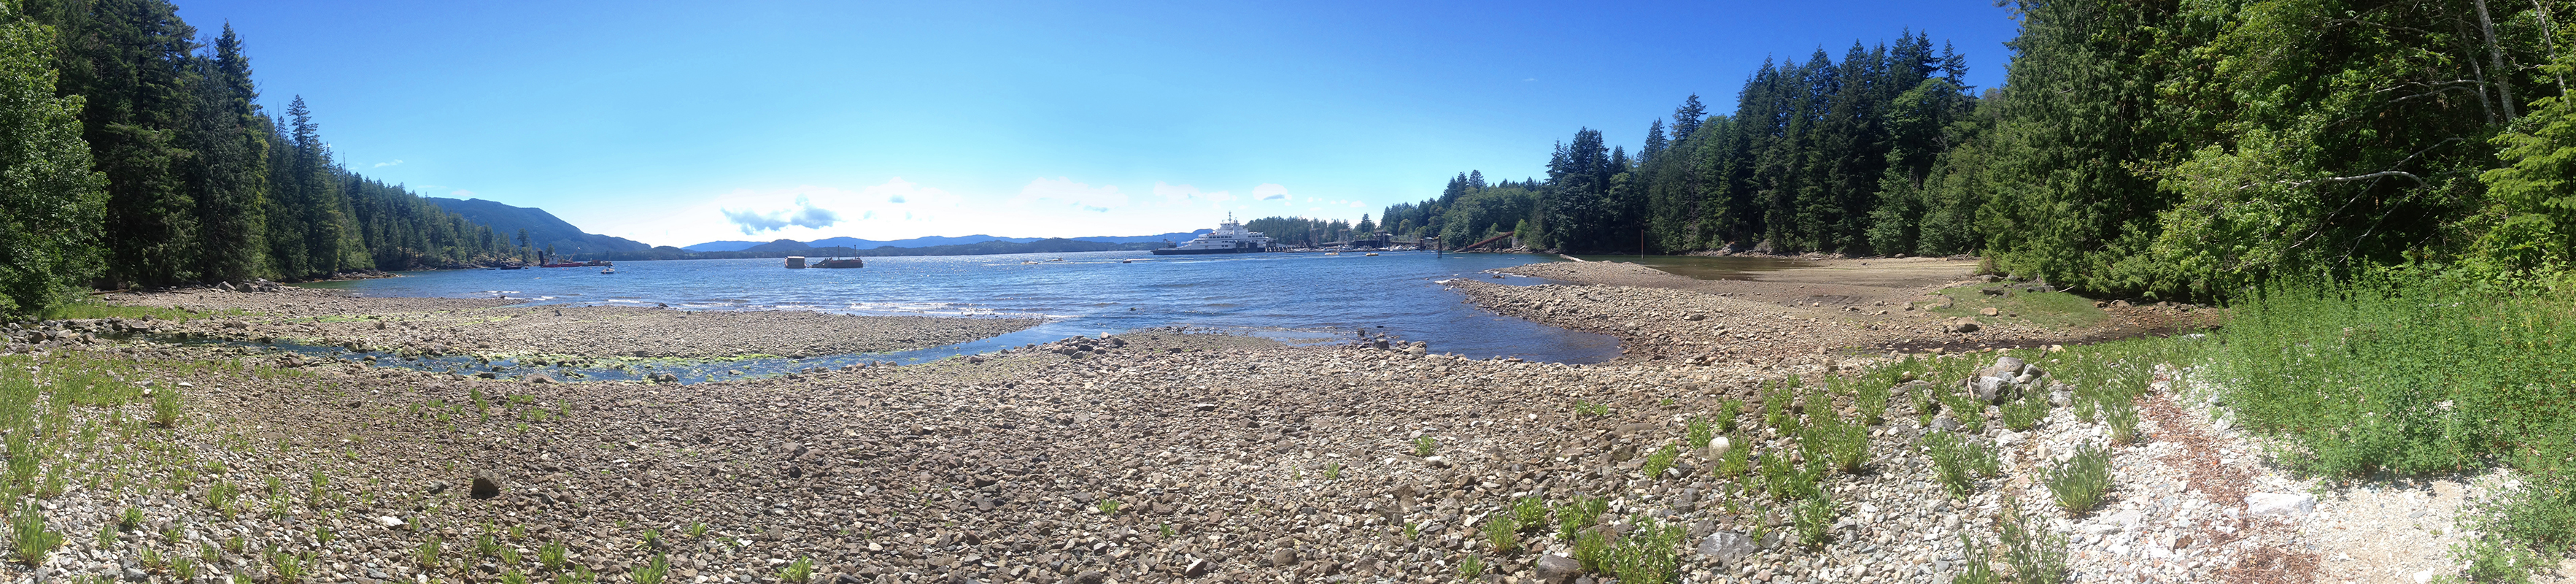 photograph of saltery bay on the sunshine coast near vancouver